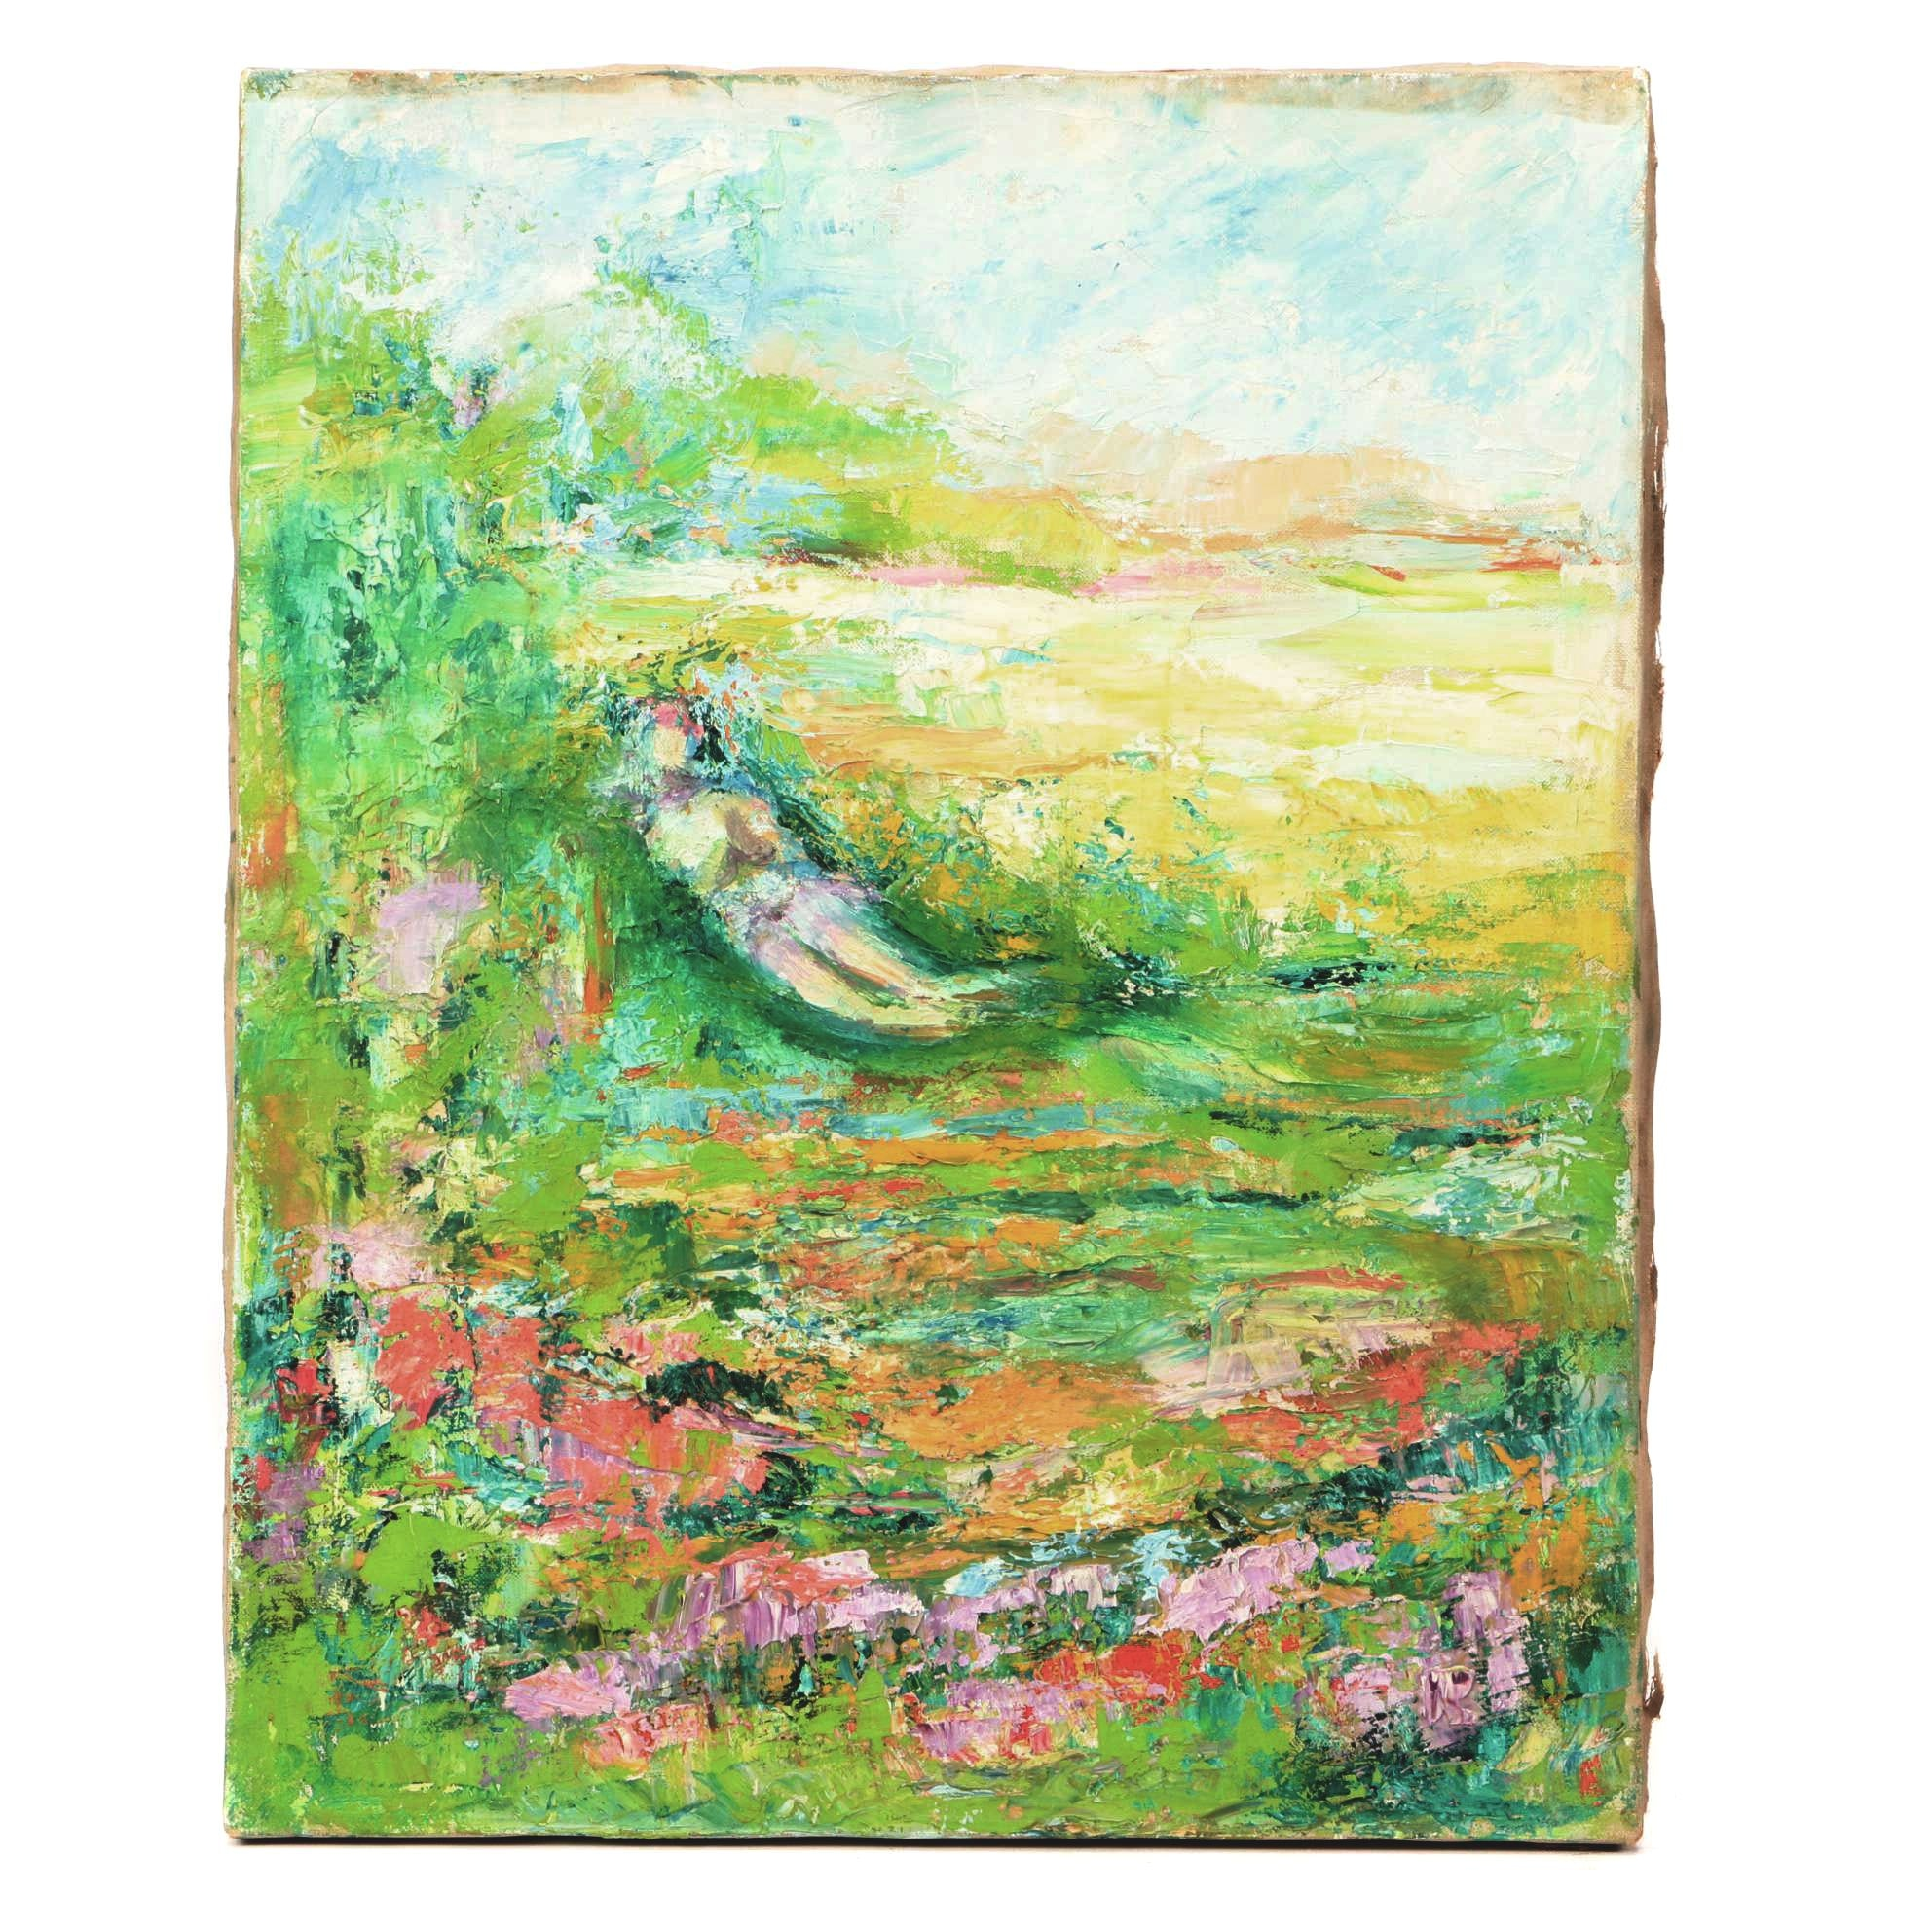 Abstract Oil Painting of Figure in Garden